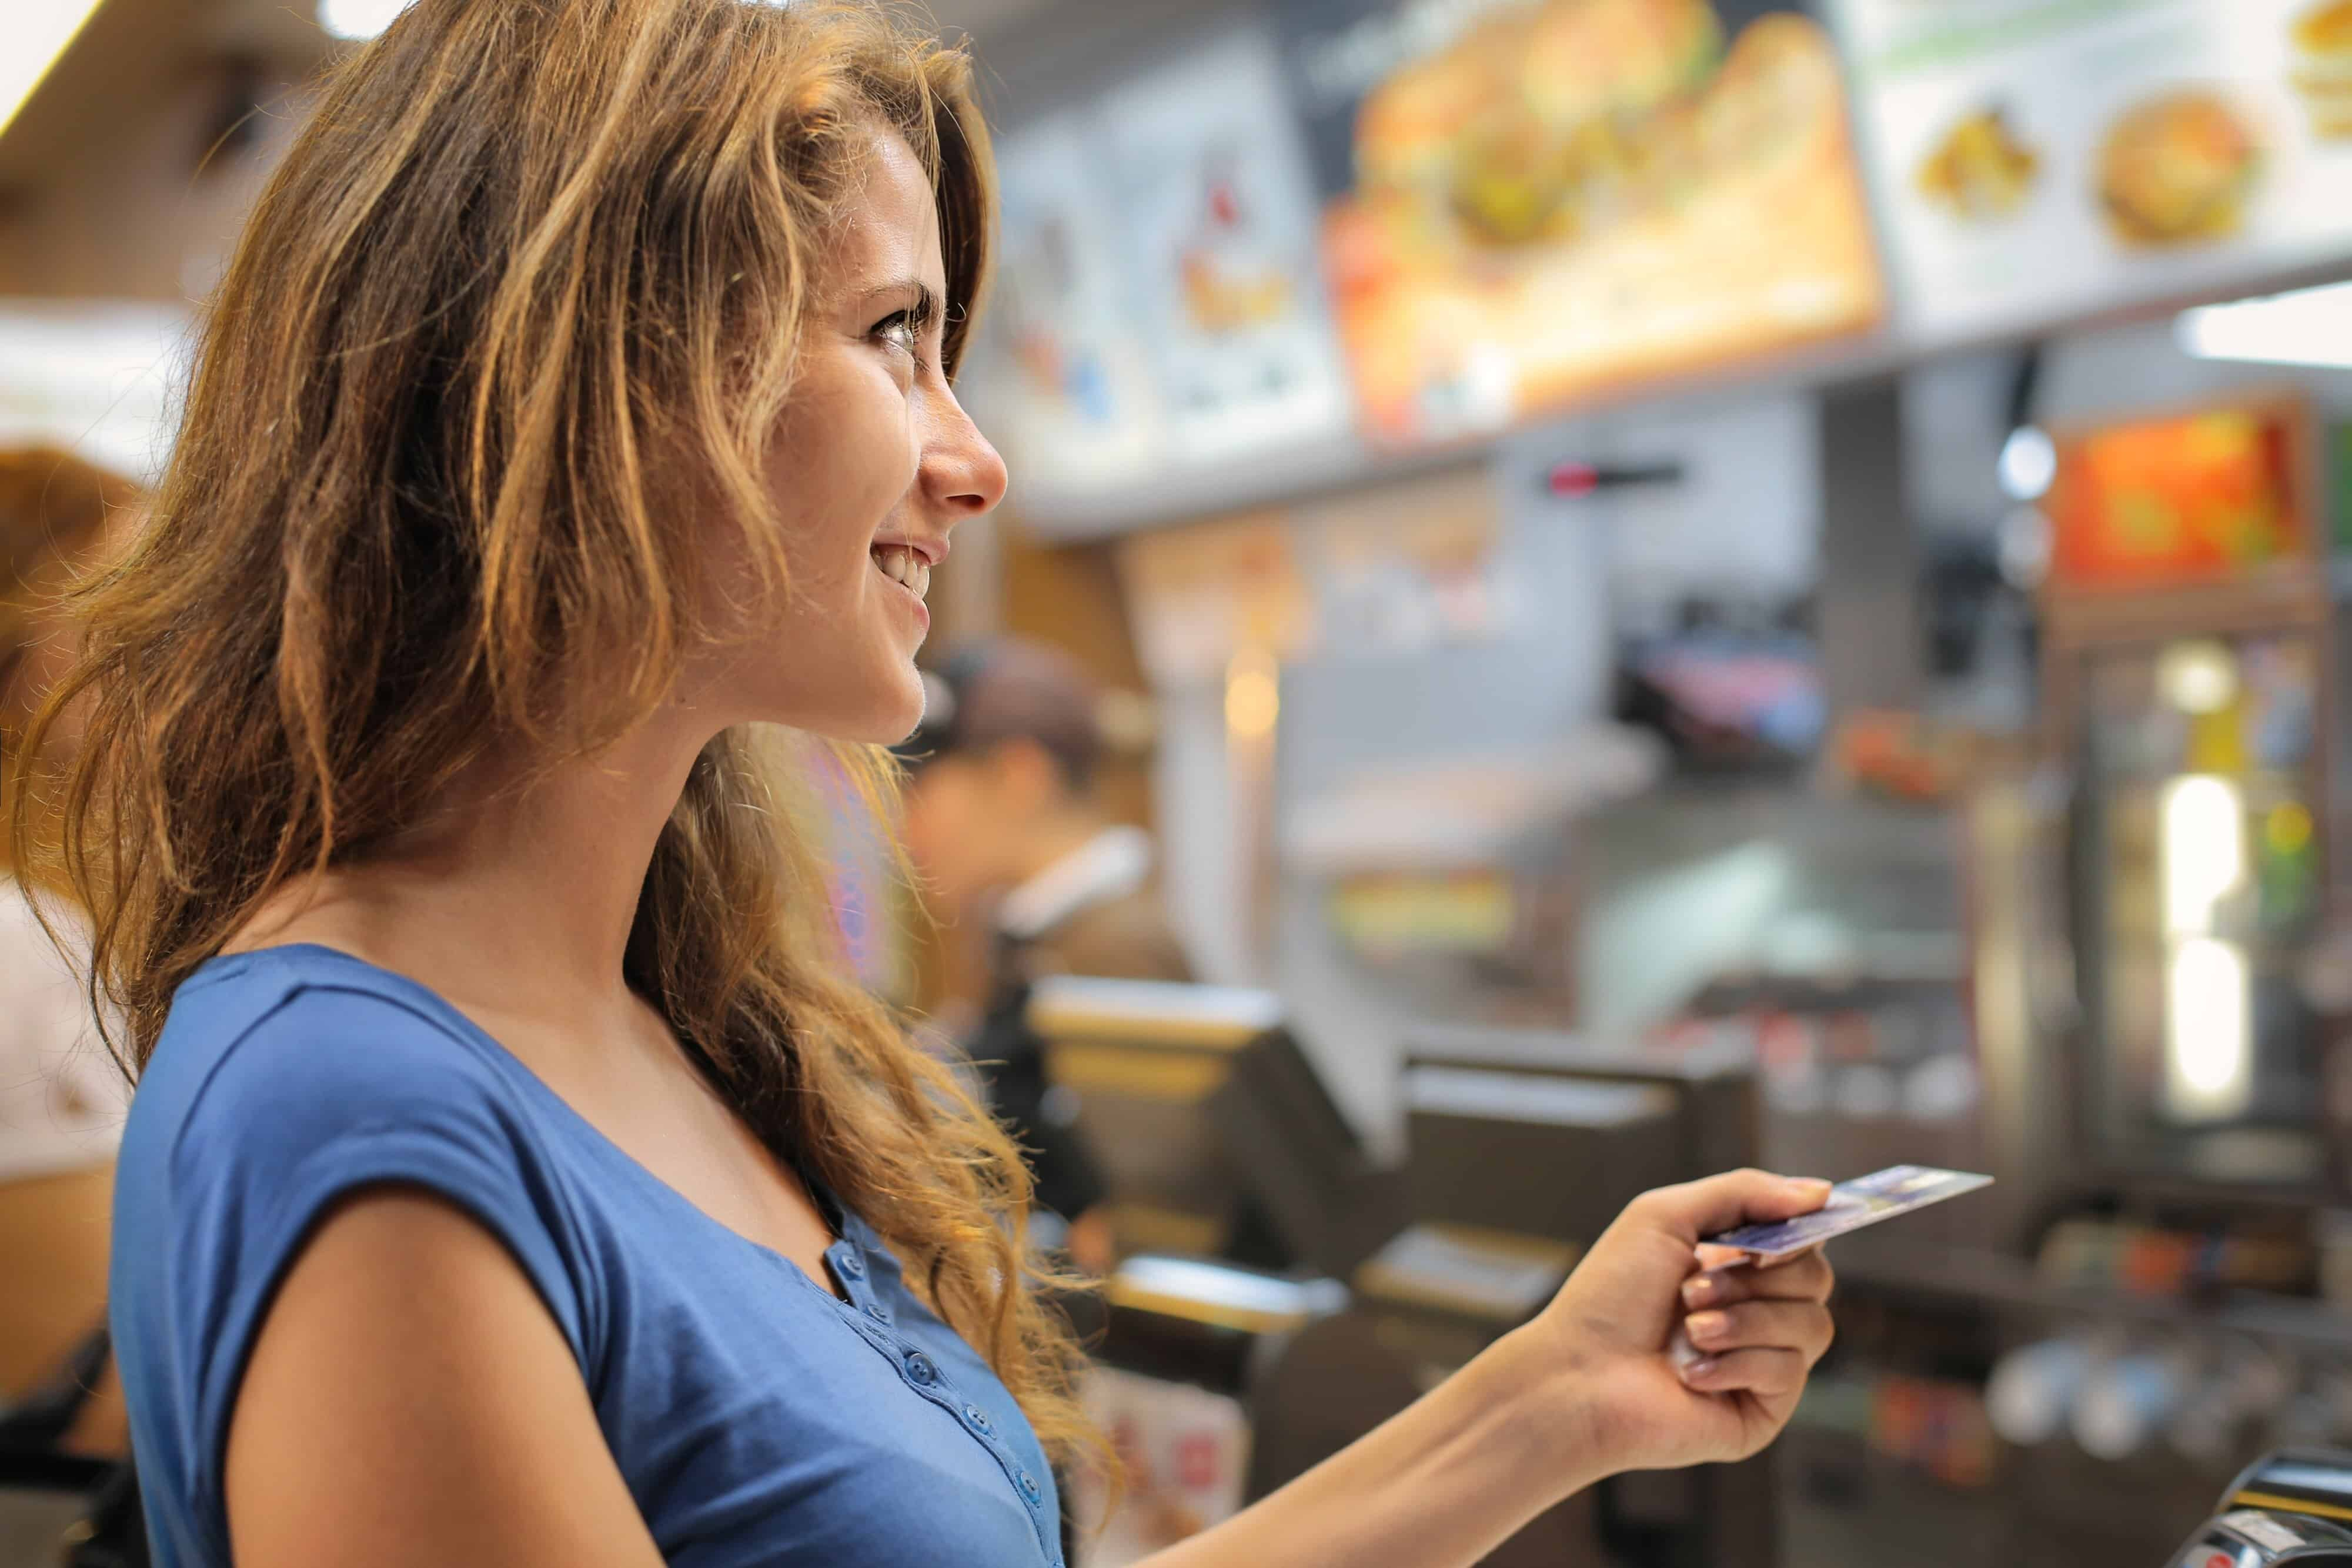 These Fast Food Restaurants Accept Ebt Fast Food Restaurant Fast Food Restaurant